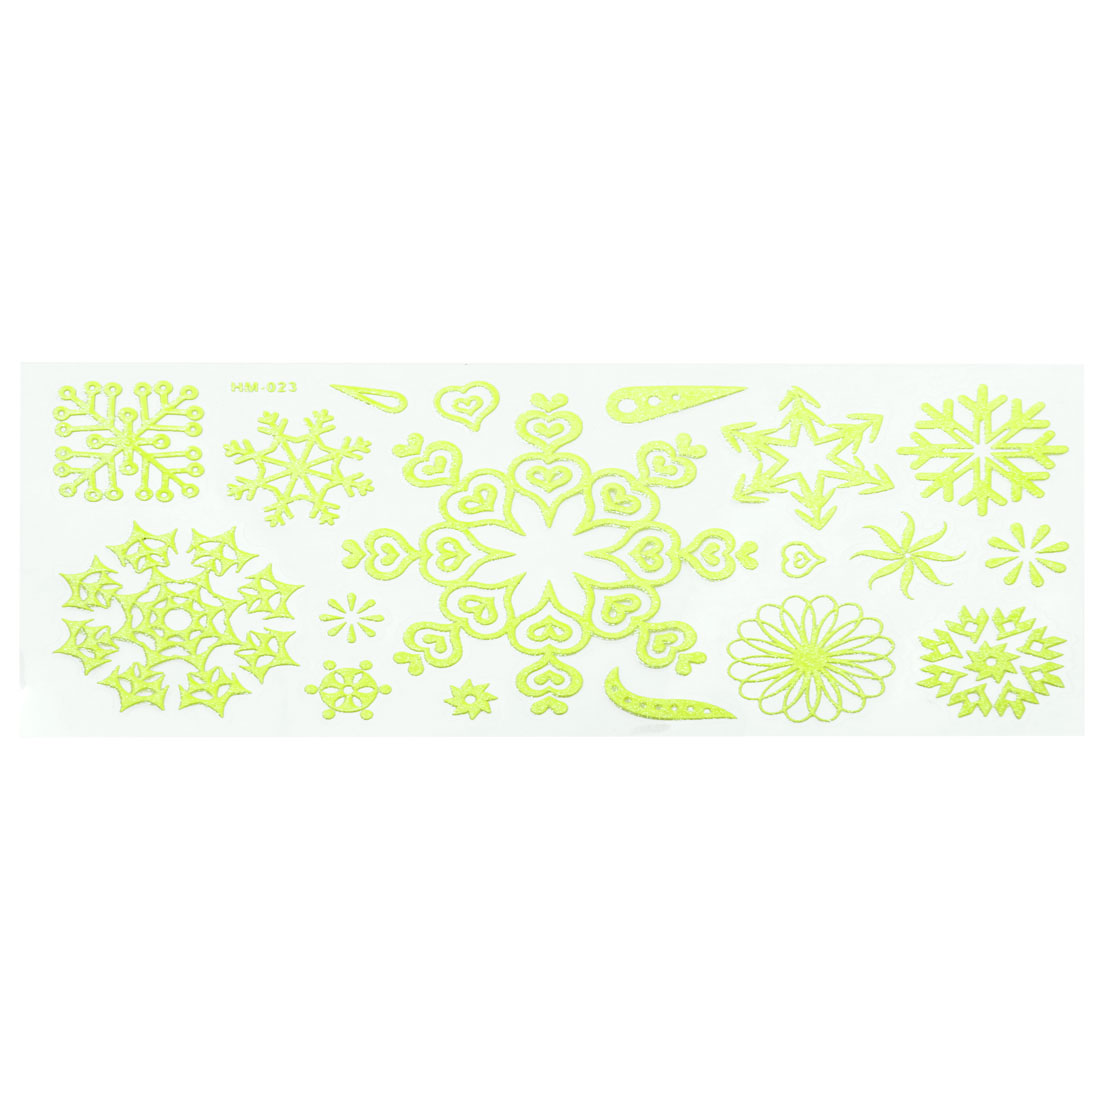 Wall Decor Snowflake Heart Design Light Green Luminous Stickers 16 in 1